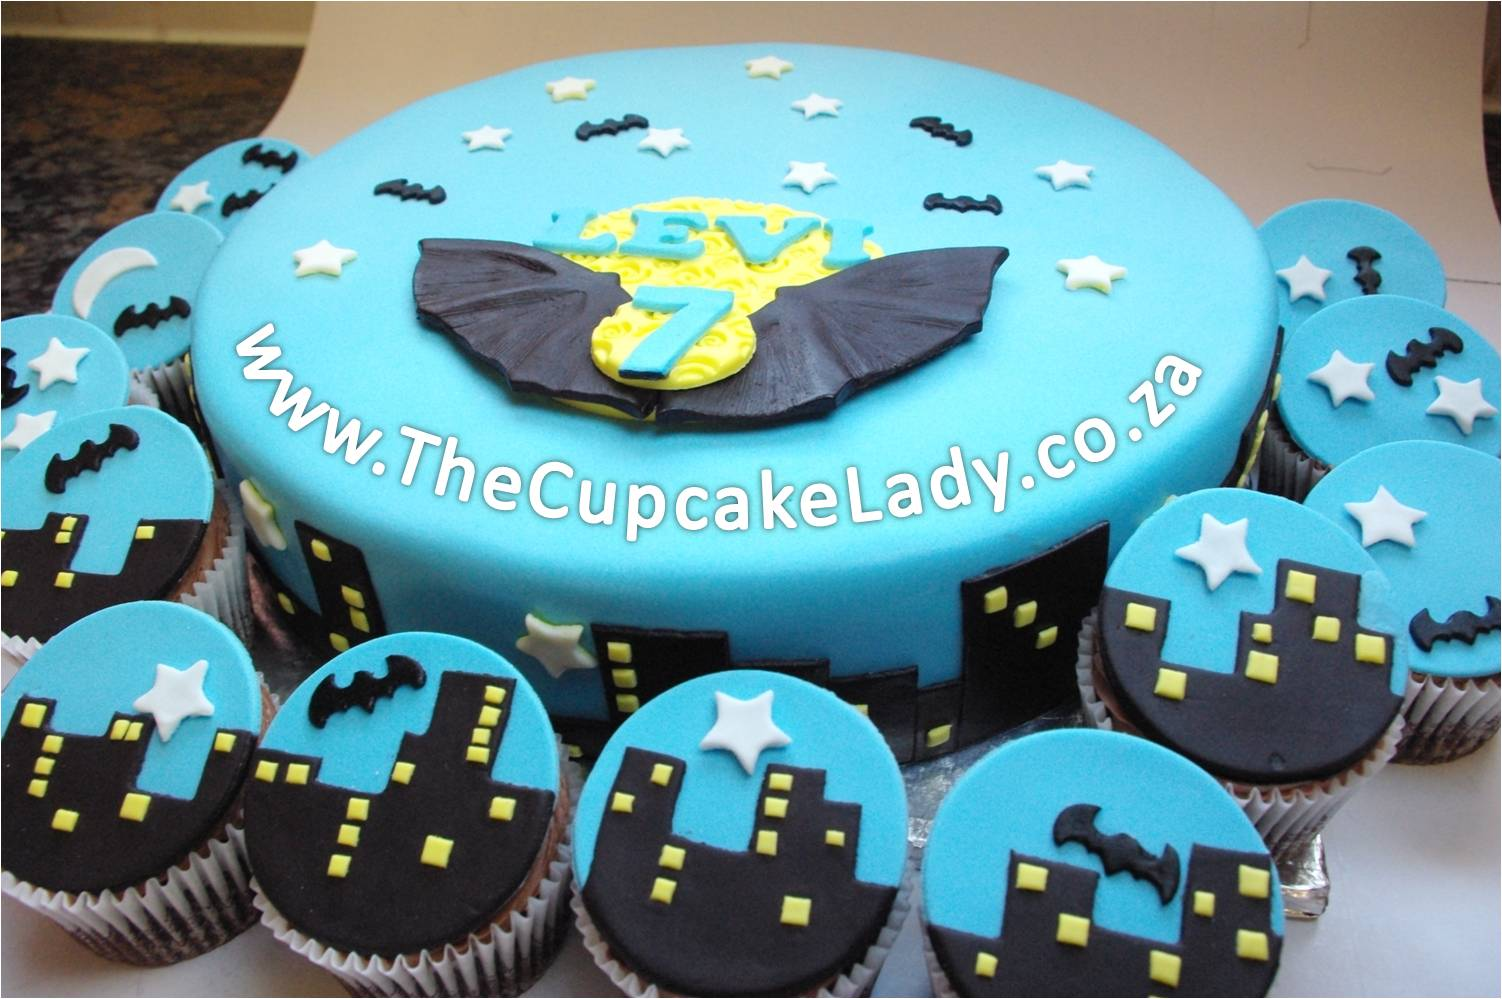 batman inspired, chocolate cake, chocolate butter icing, chocolate ganache, sugarpaste, night time city skyline, matching cupcakes